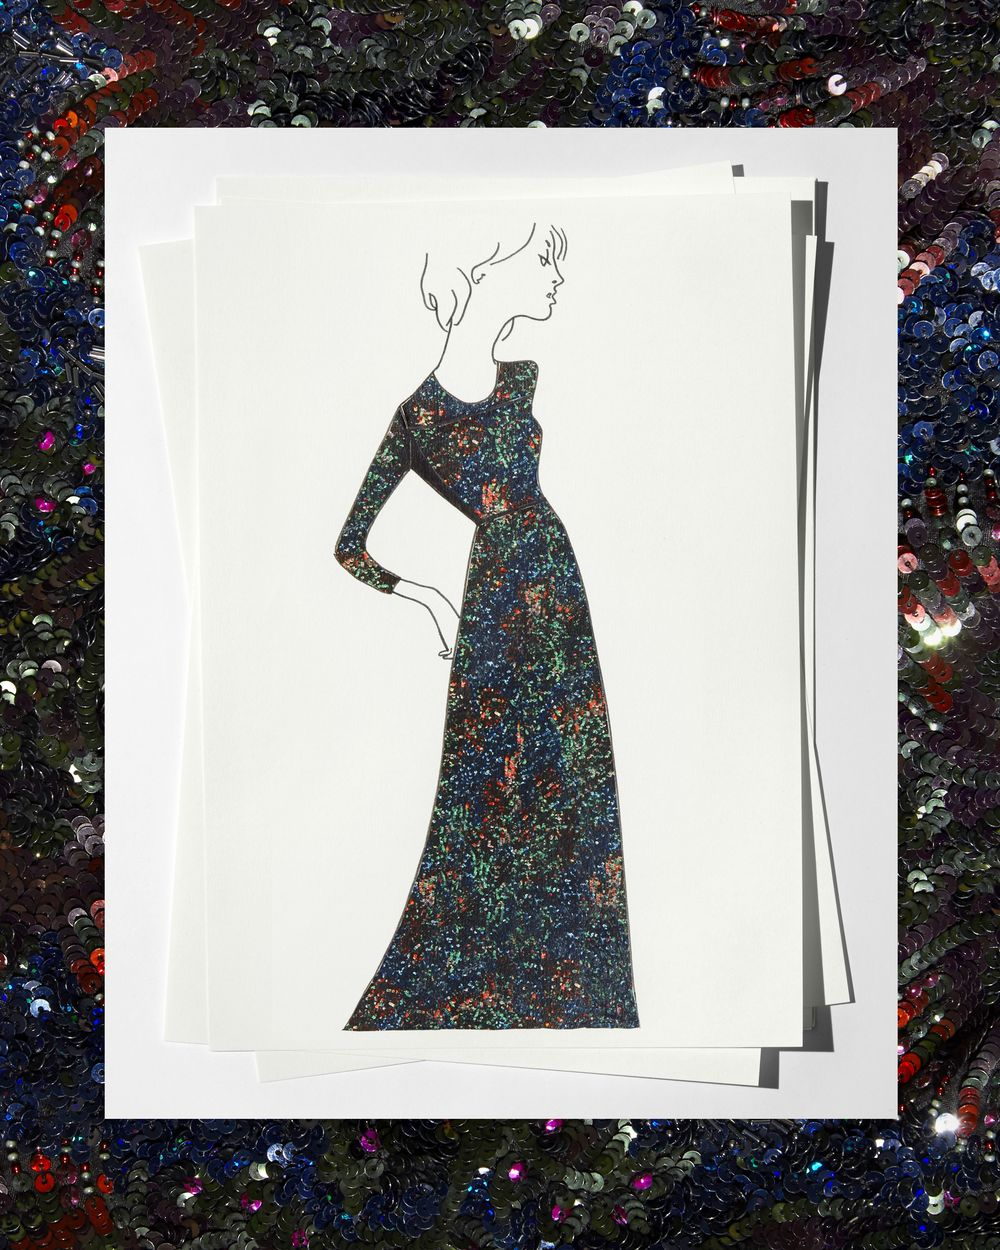 Sketch_of_custom_black_silk_gown_with_floral_hand-embroidered_sequins__worn_by_Adele_on_her_2016_tour-2.0.jpg